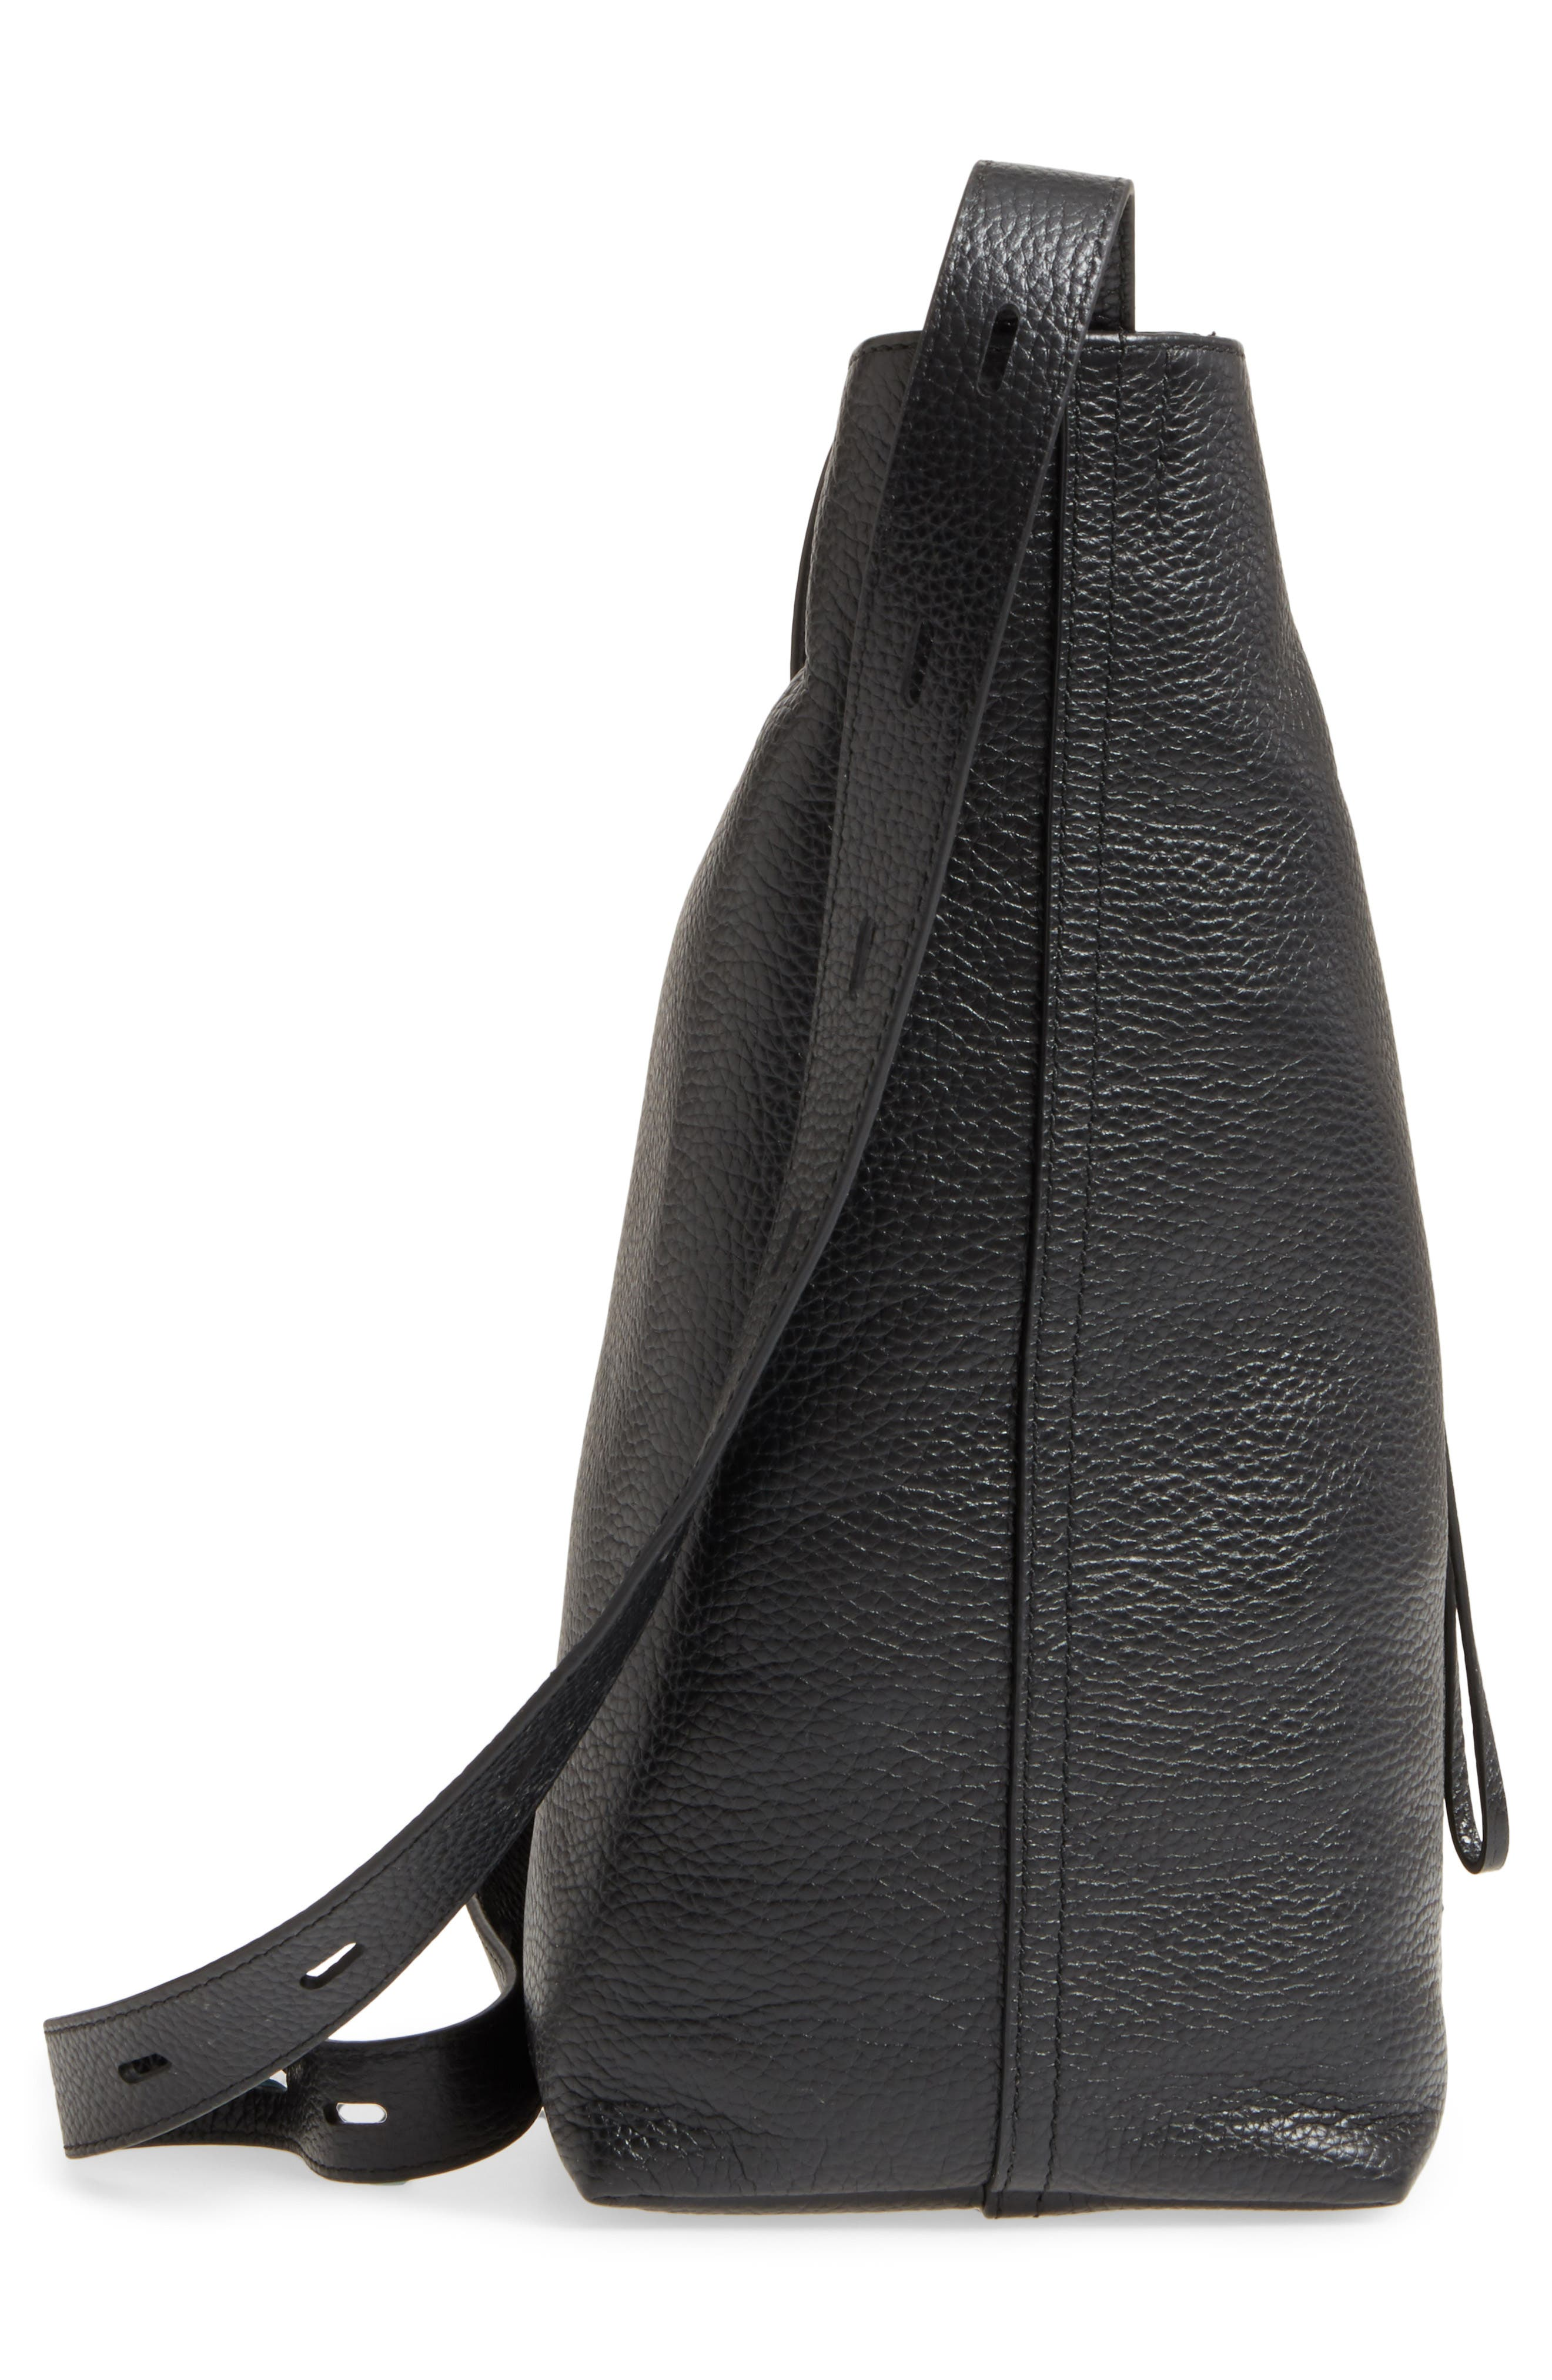 Pebbled Leather Panel Pail Convertible Leather Bucket Bag,                             Alternate thumbnail 5, color,                             001